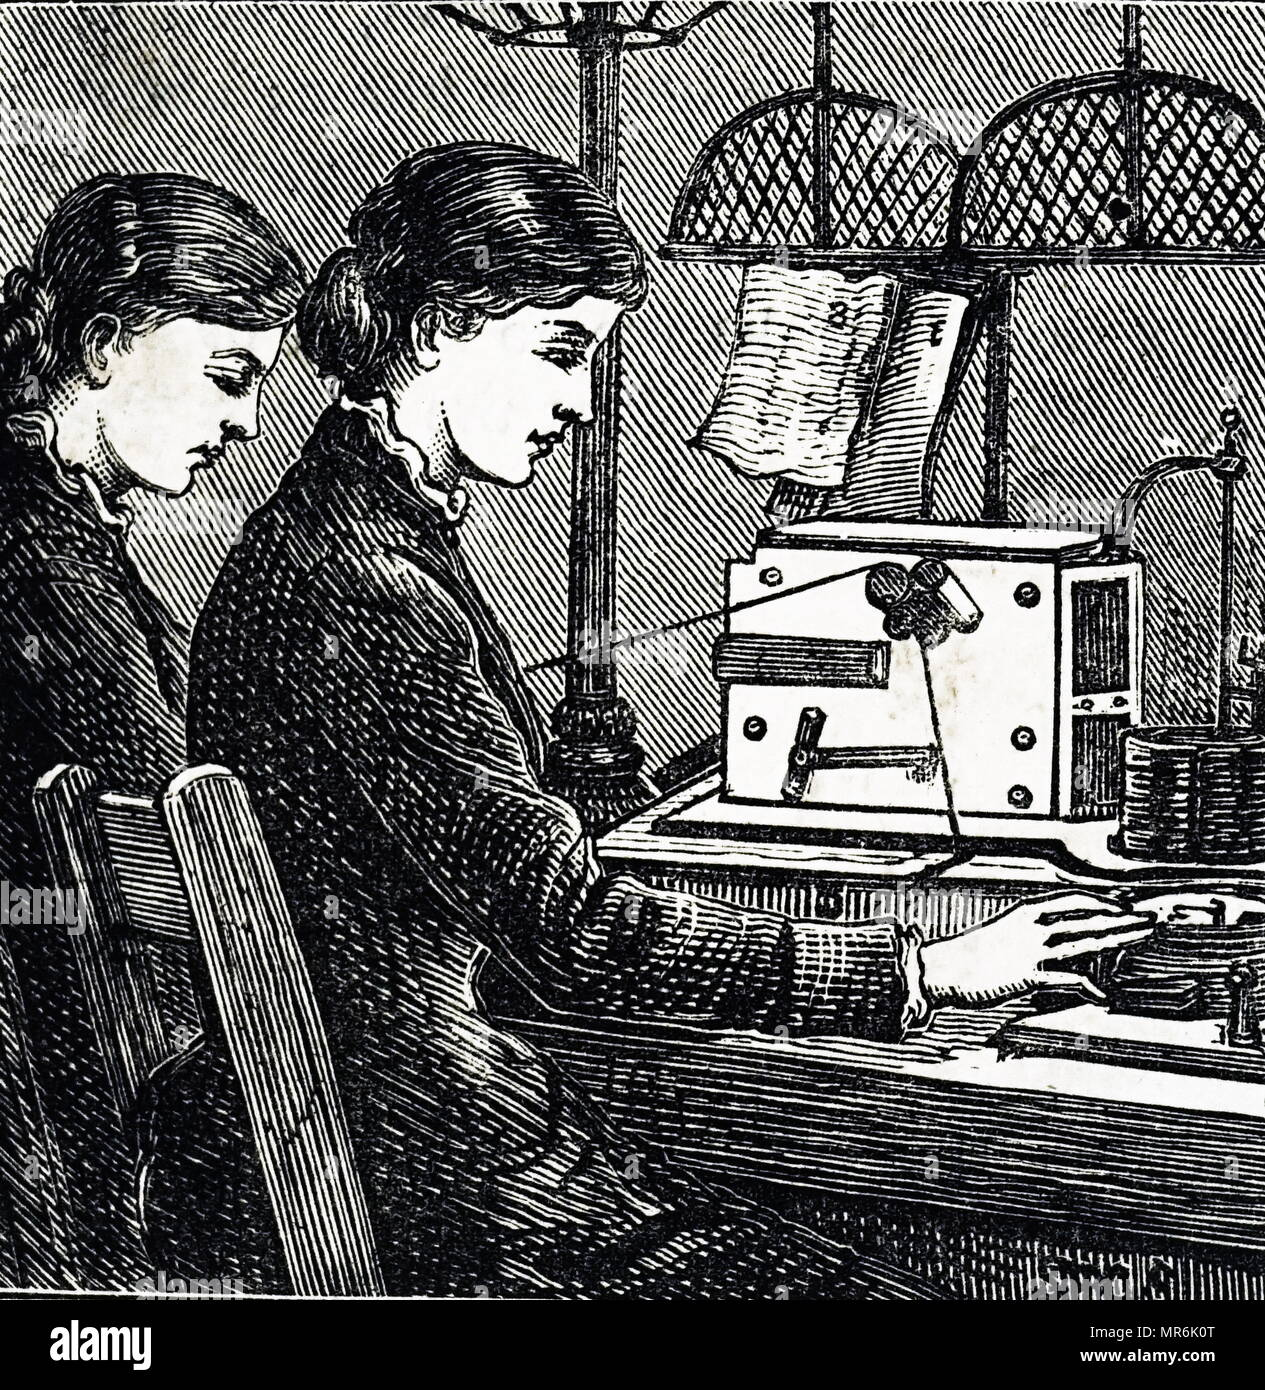 Engraving depicting operators receiving a message on a Morse telegraph at the General Post Office. Dated 19th century - Stock Image